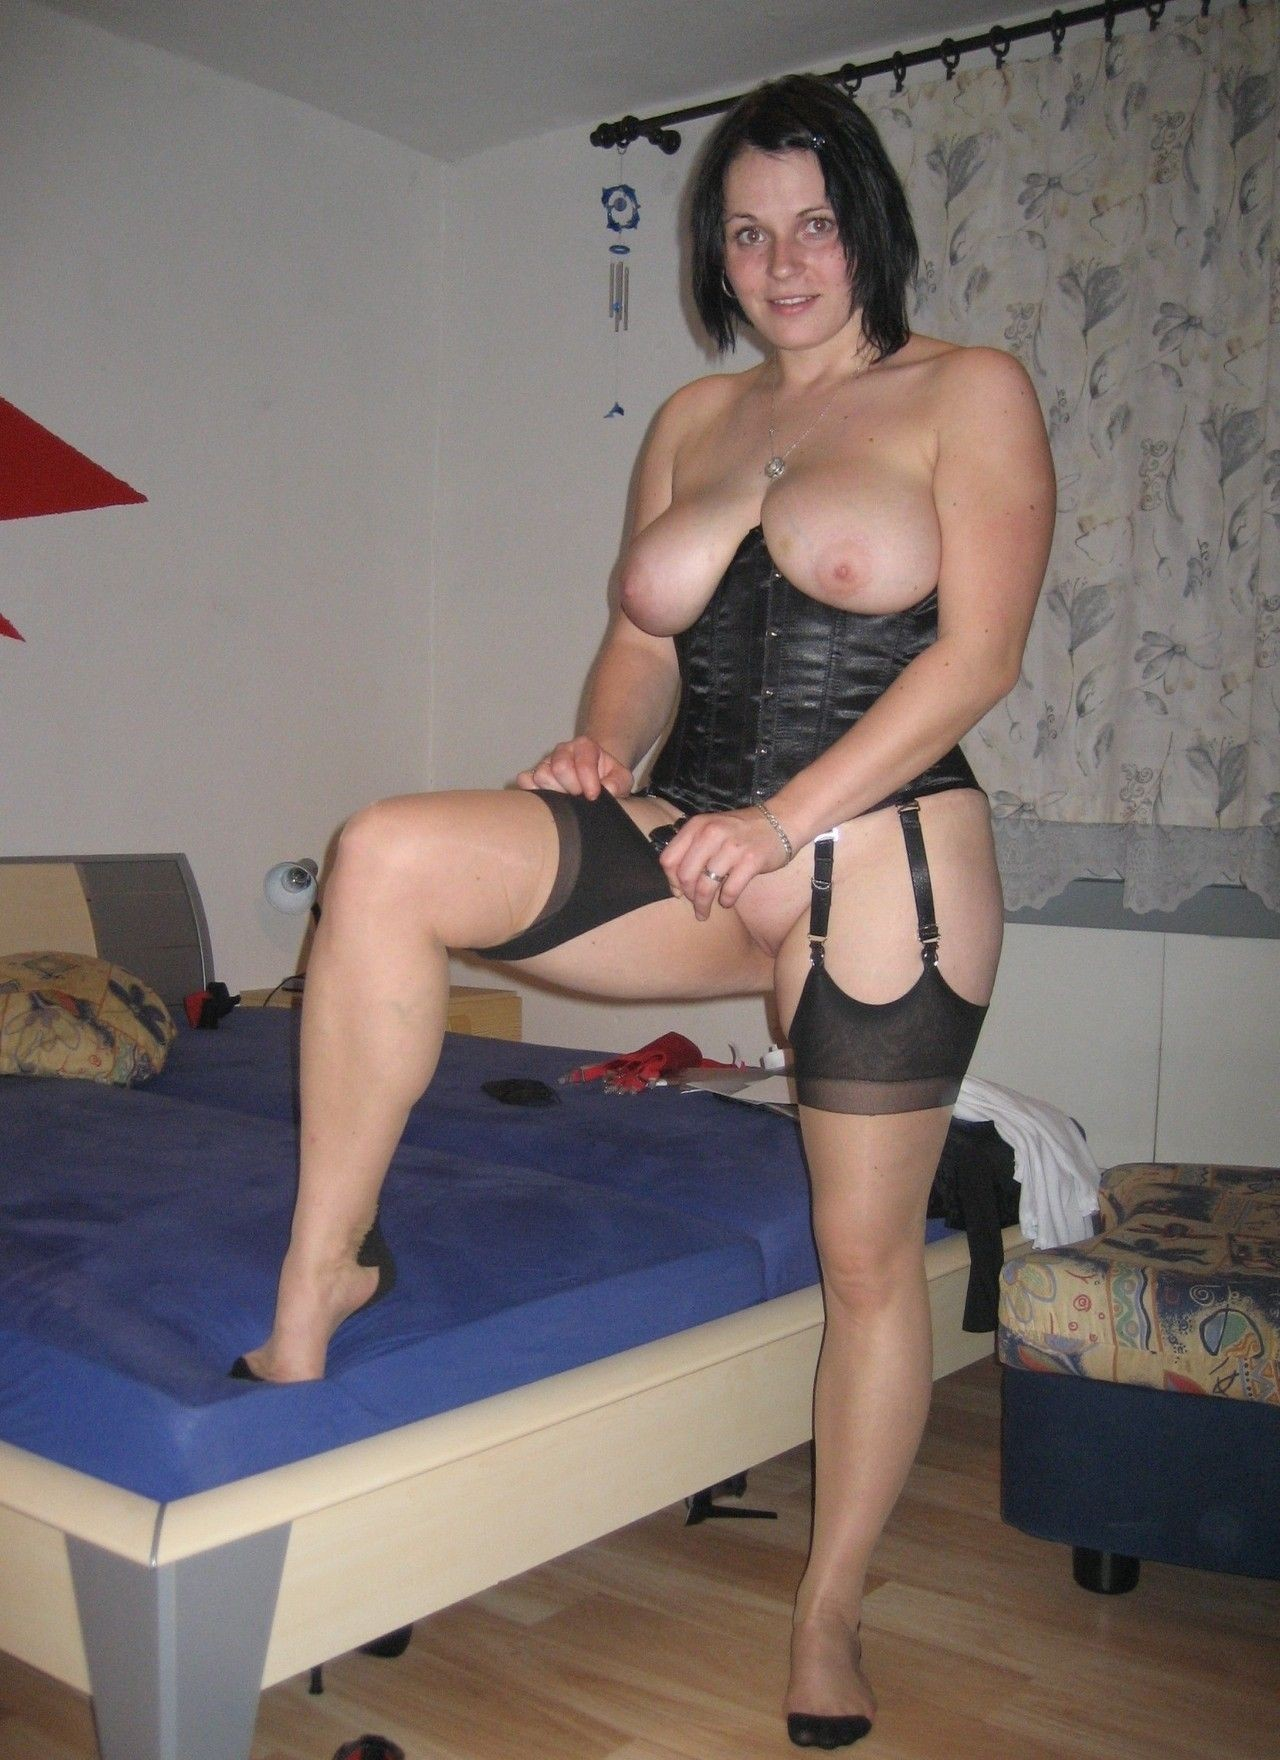 Chubby-wife-in-corset-and-nylons-getting-dressed.jpg